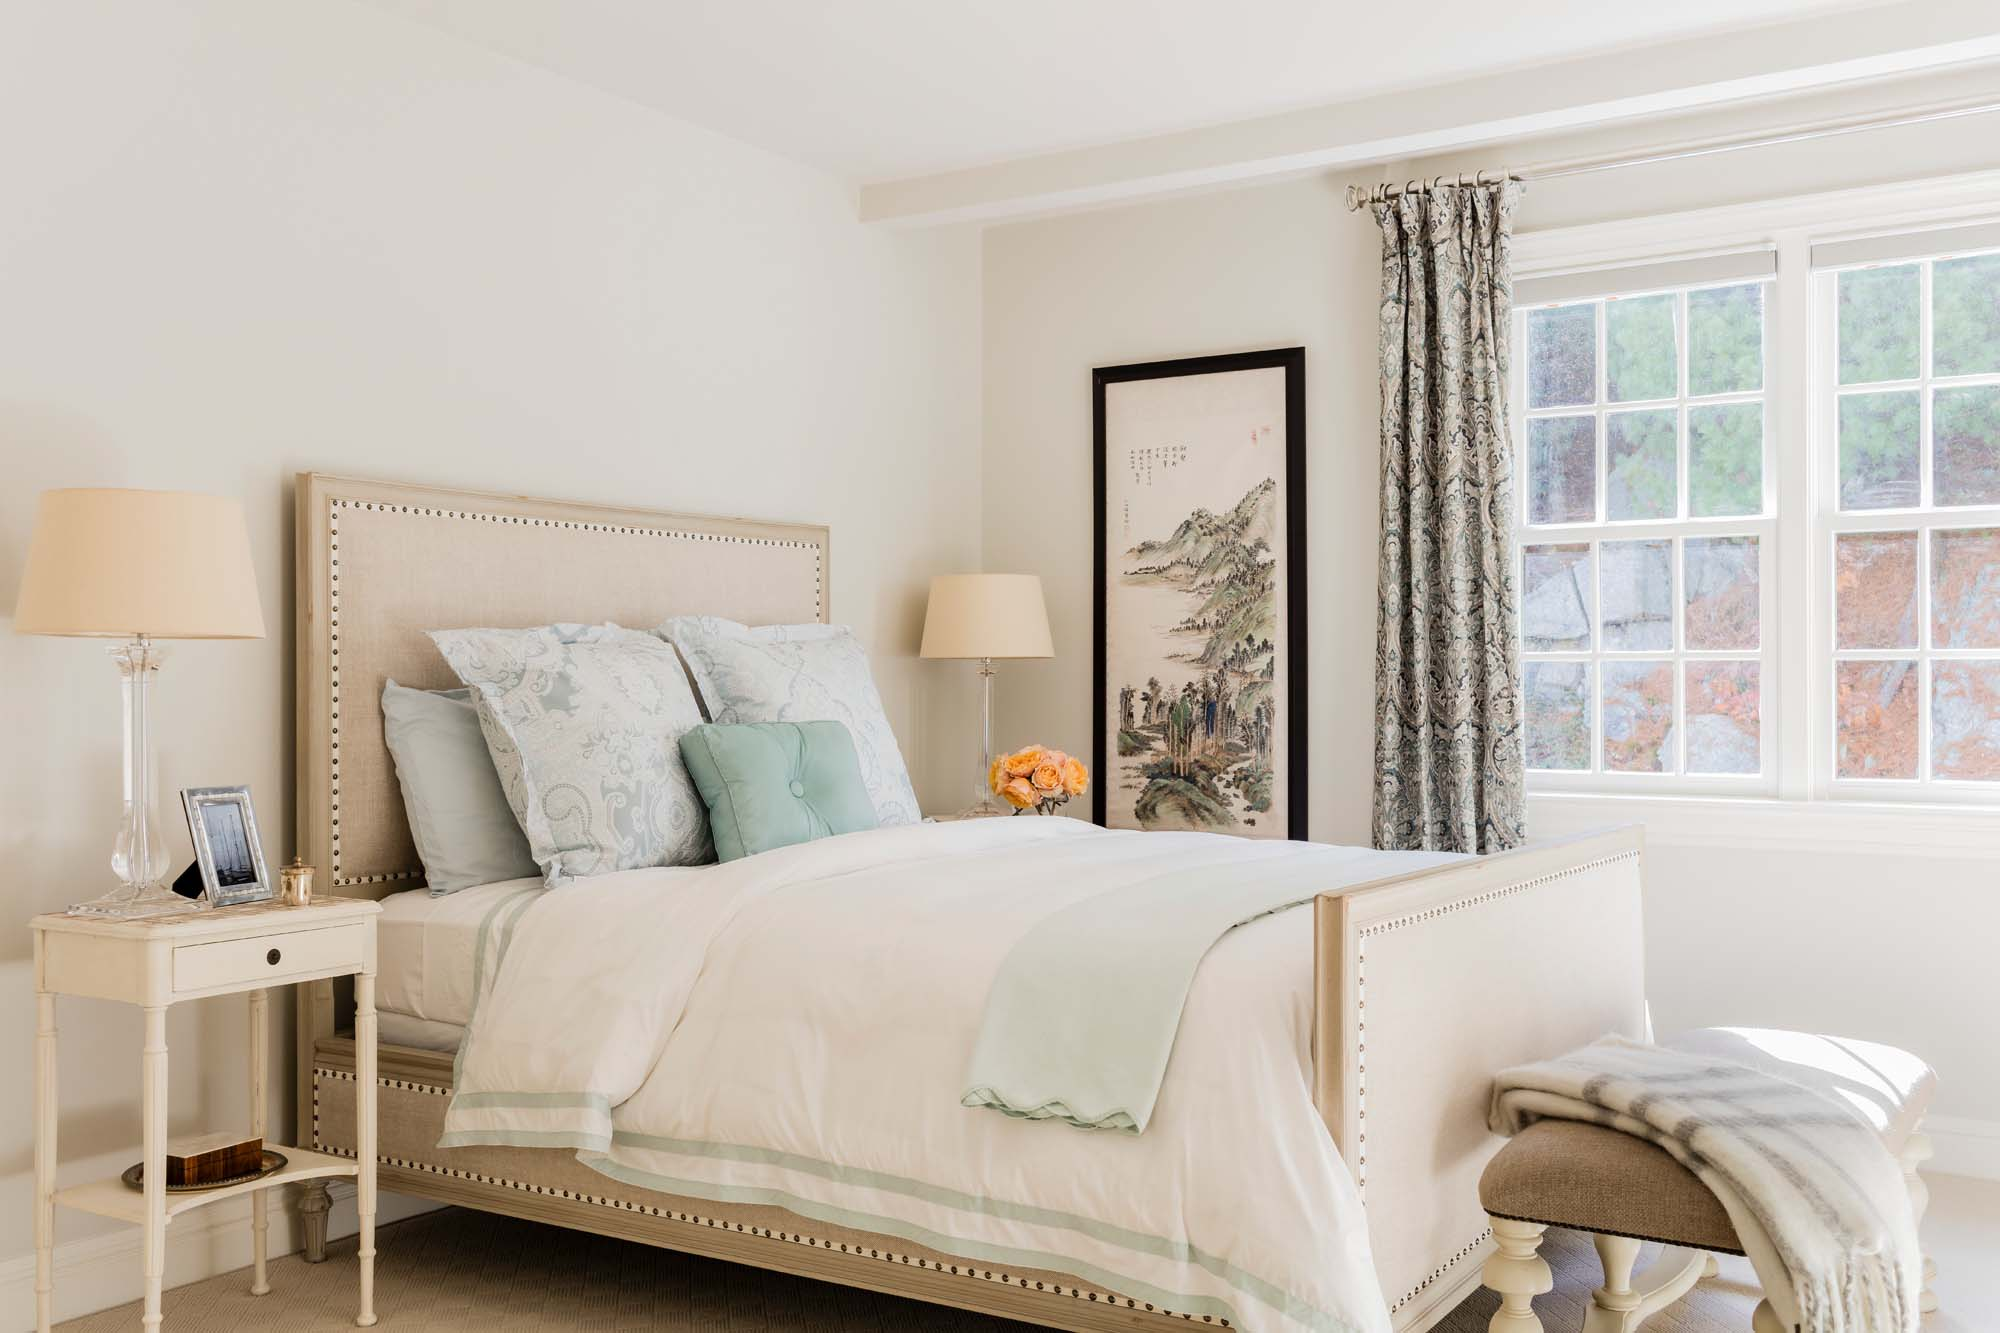 Bedroom with bed, bedside table, reading lamp, and white window frame, matouk, matouk bedding, rh, restoration hardware, art